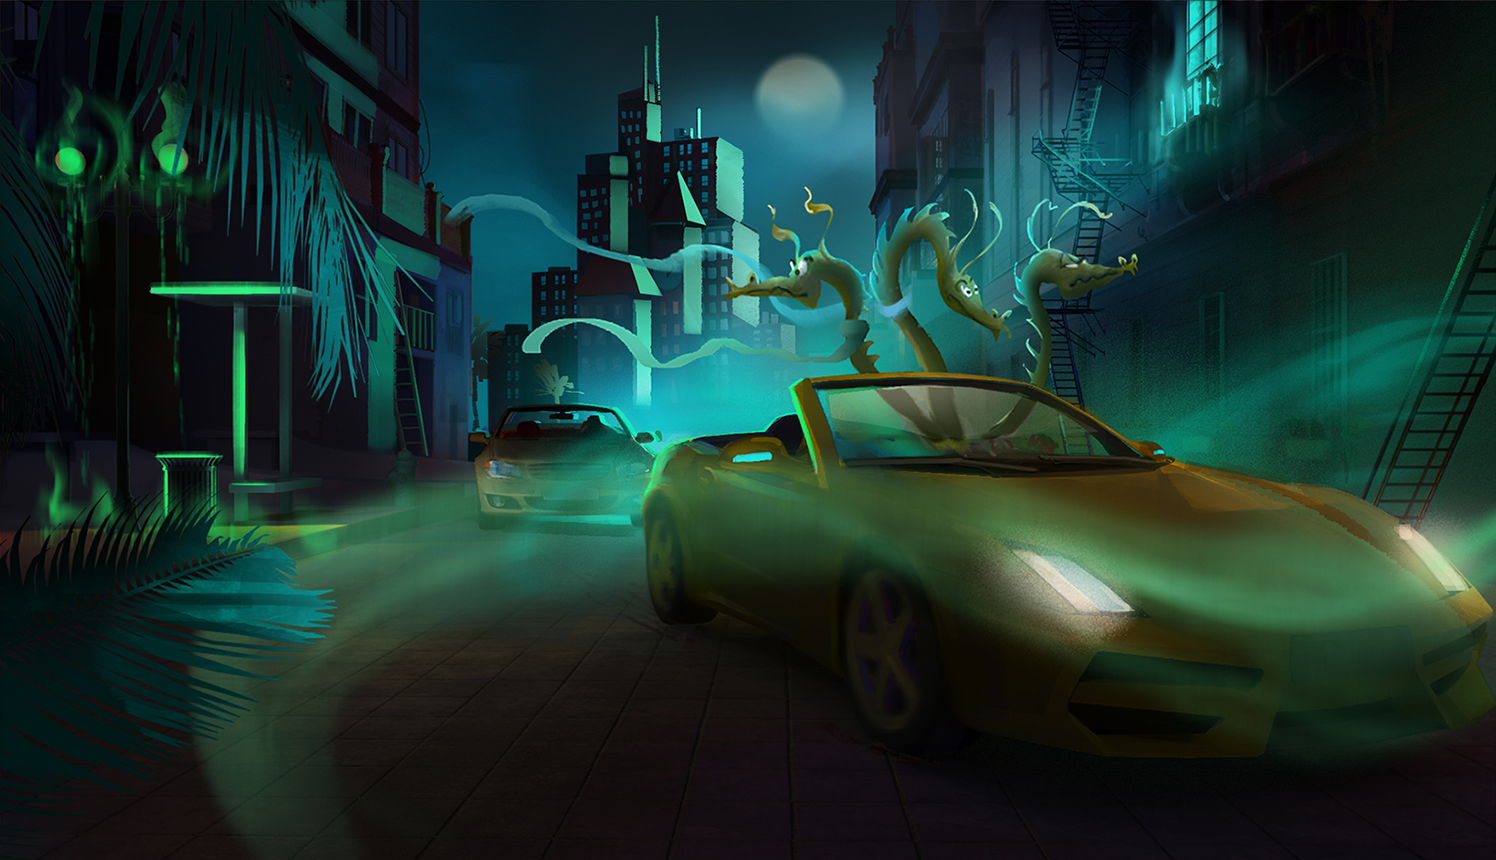 Cars-Dragon_mysterious_www.pigareva.com